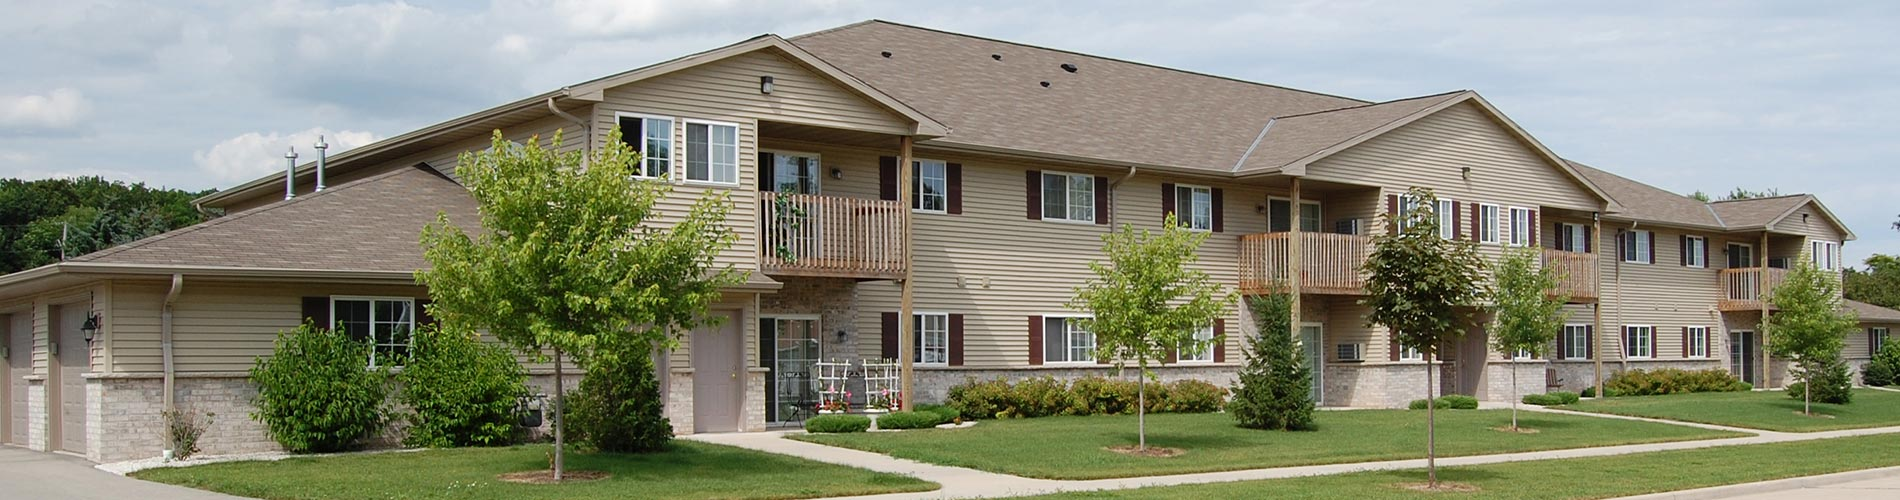 Doneff Northeast Wisconsin Apartment Rentals